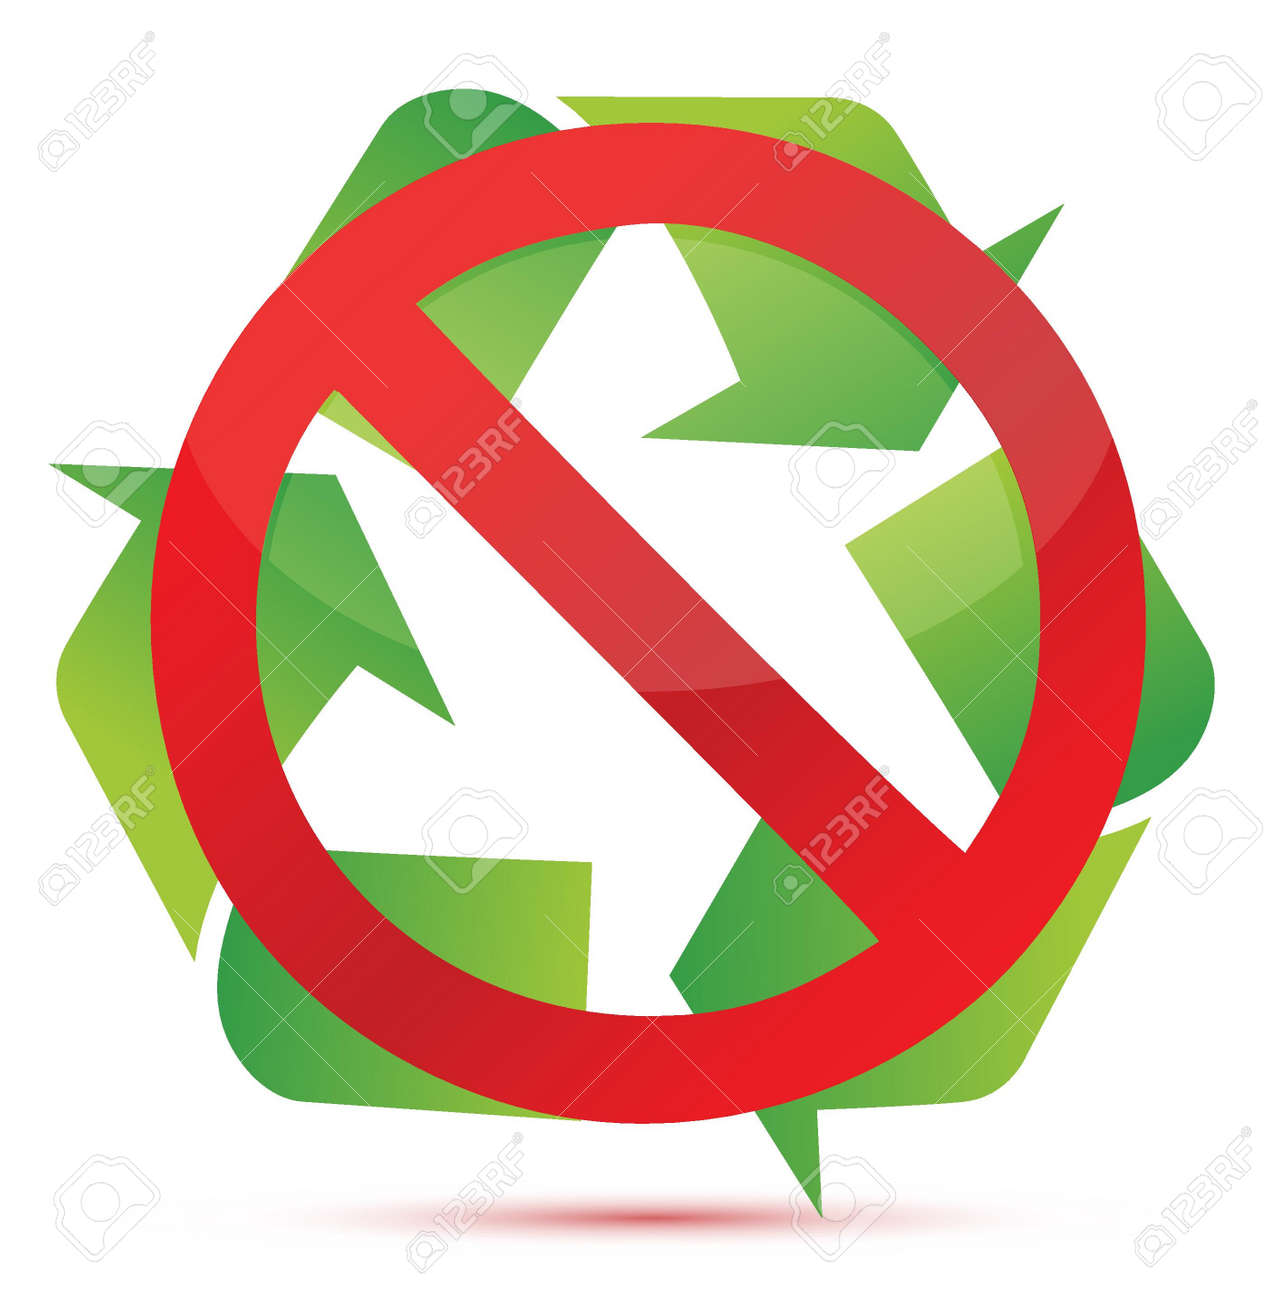 Do Not Recycle Illustration Design Over White Background Royalty